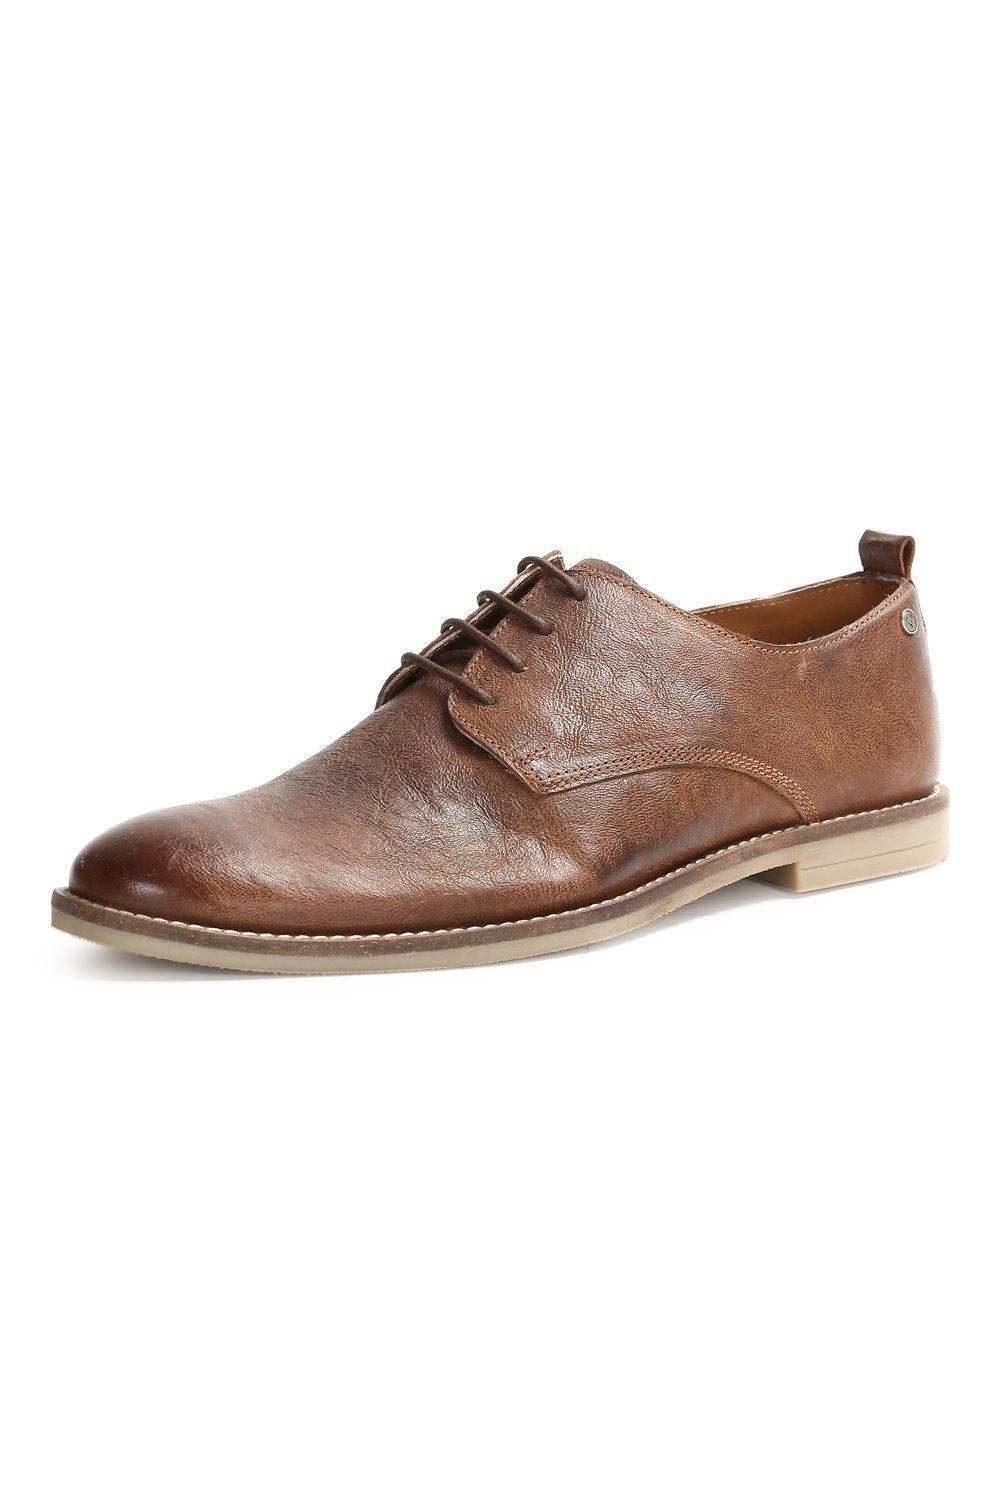 59676dea950 Solly Jeans Co Footwear, Allen Solly Tan Formal Shoes for Men at  Allensolly.com